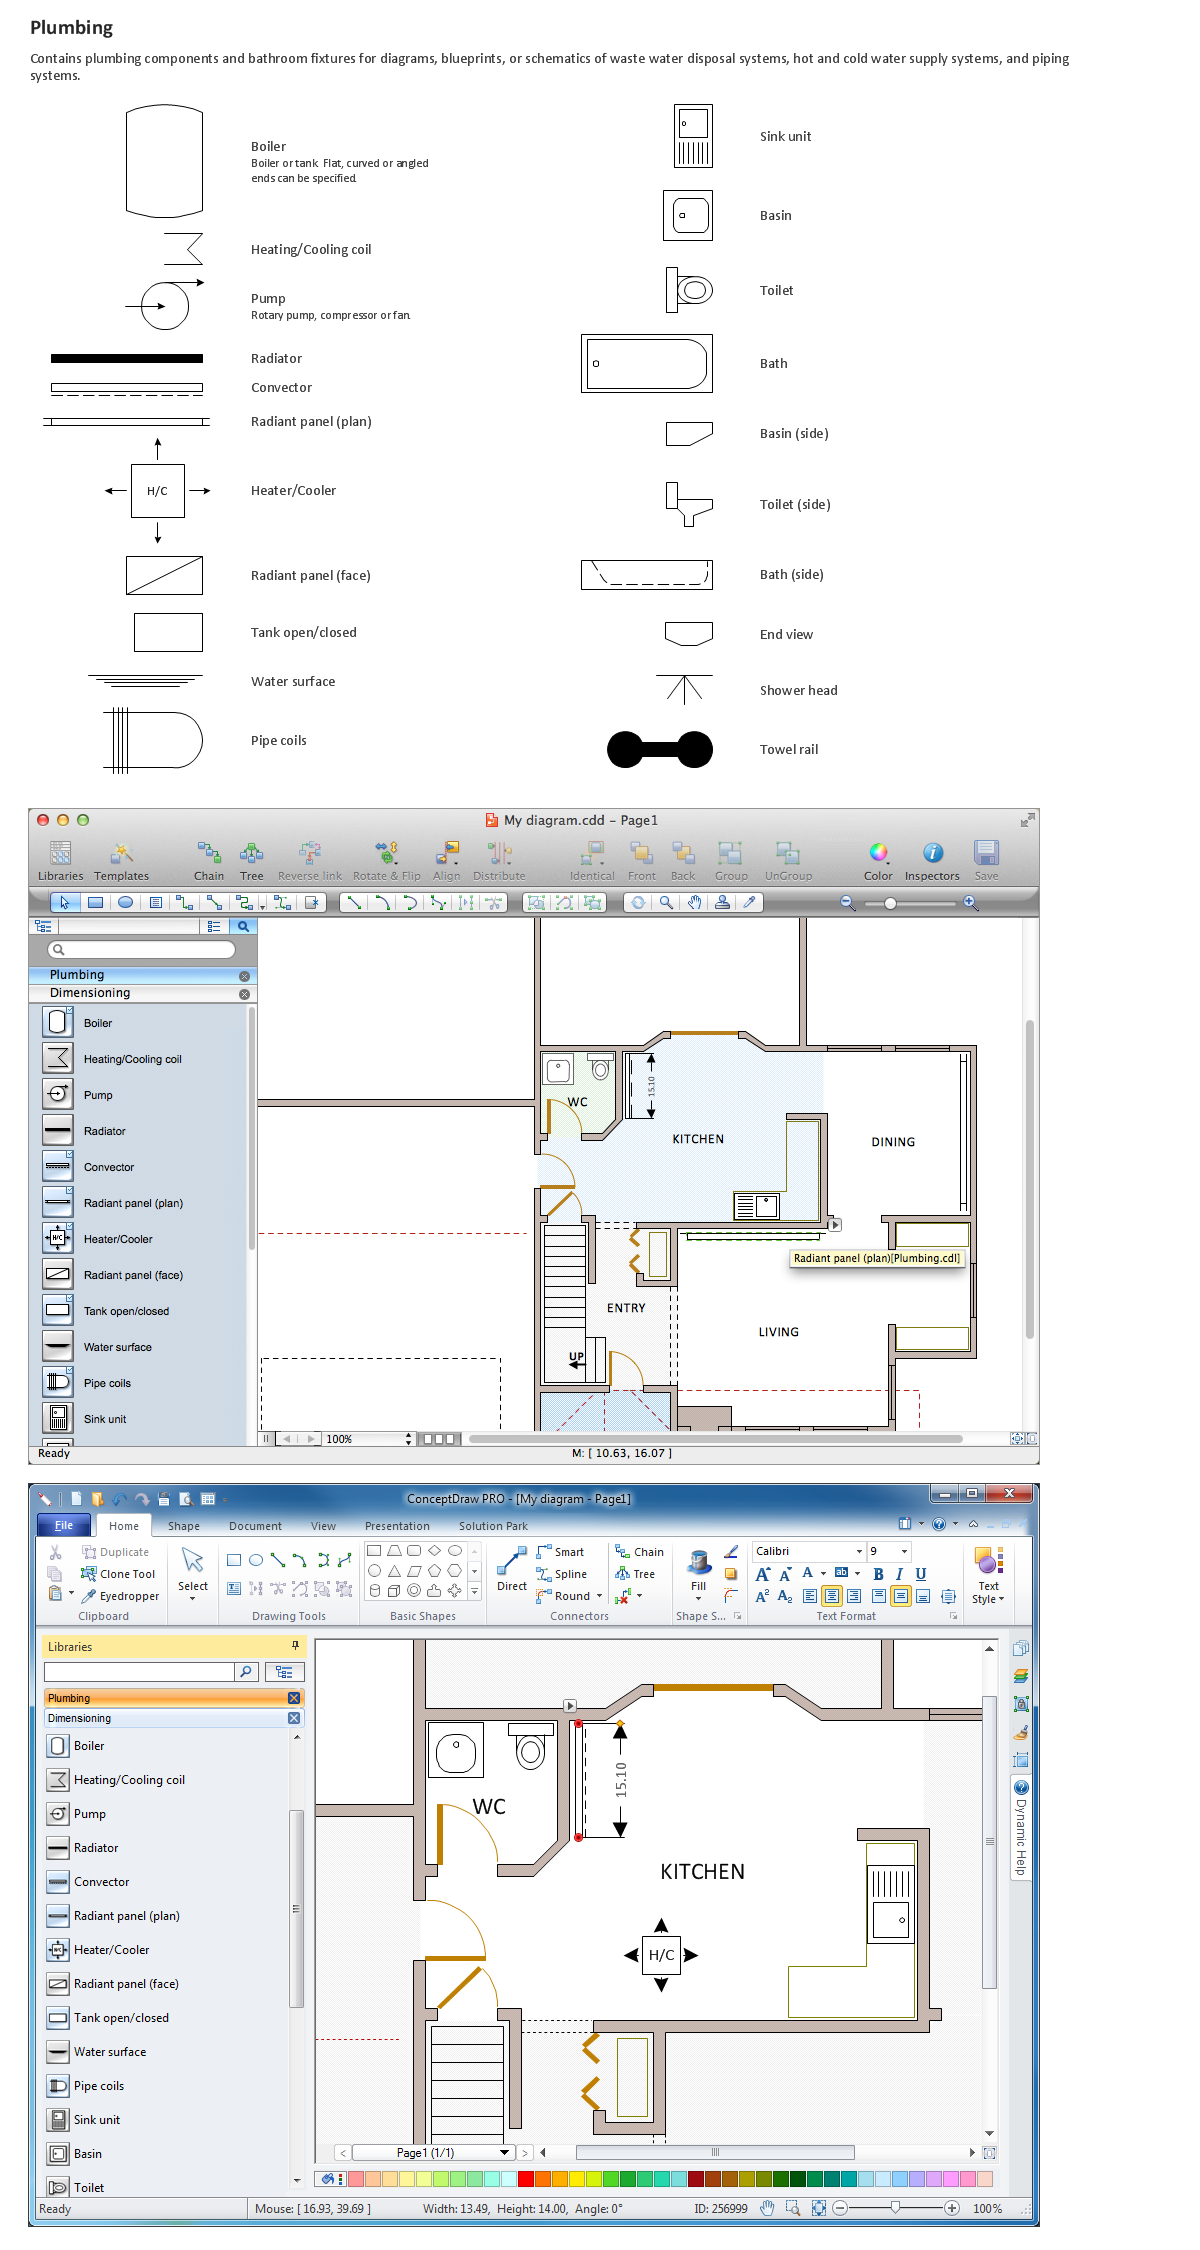 Building drawing tools design element plumbing for Building construction design software